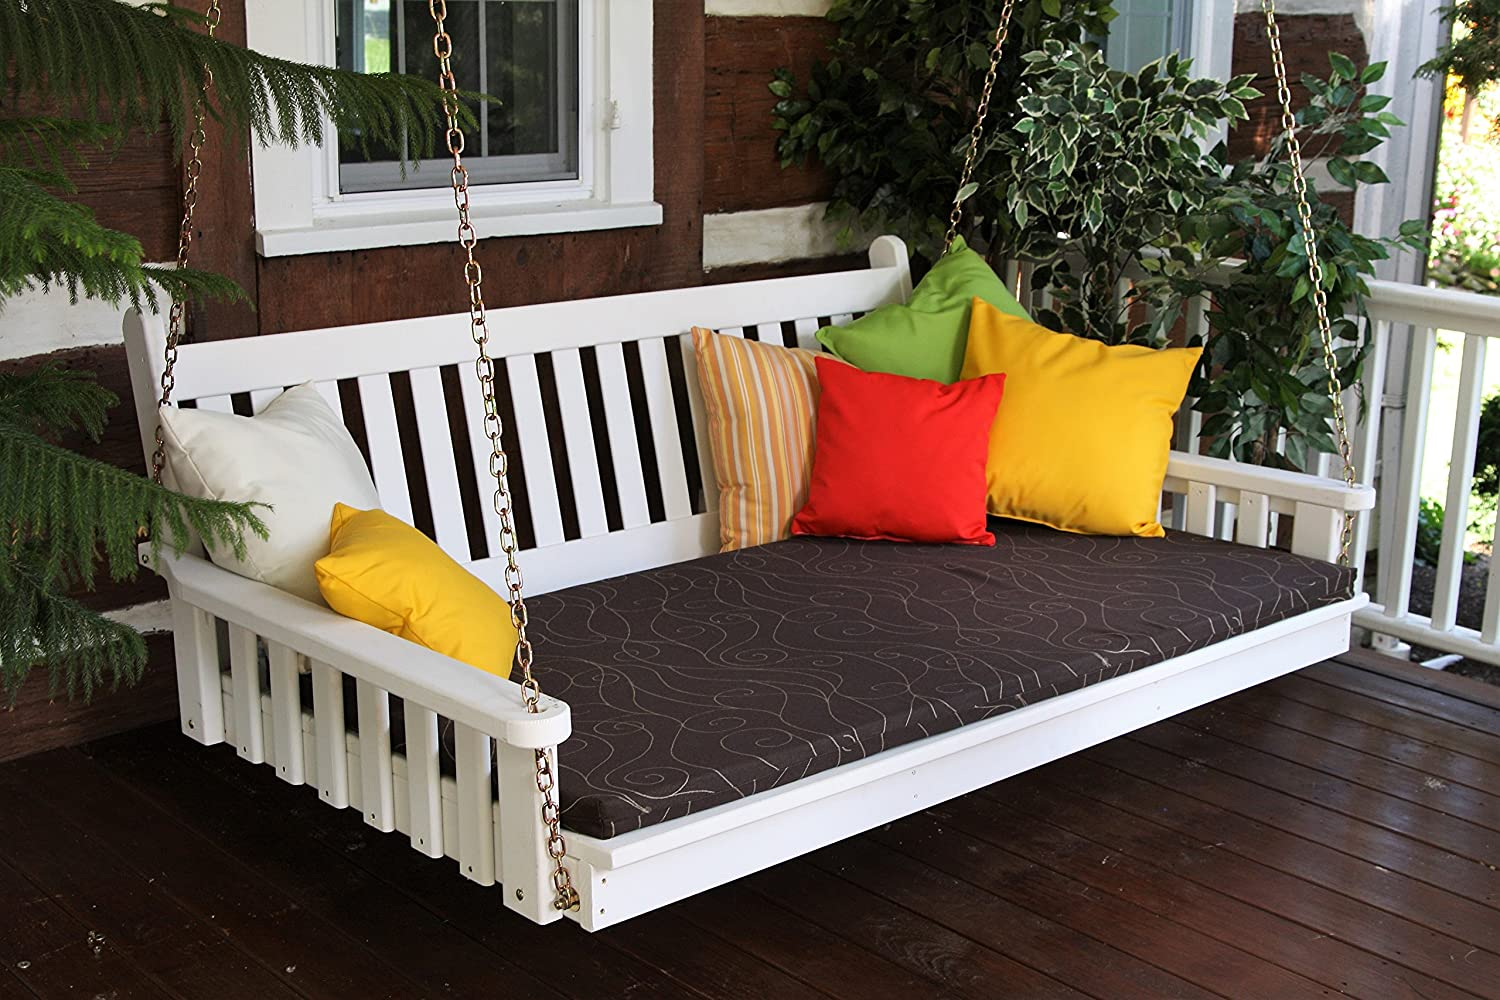 PORCH FURNITURE SWING BED, 6' Swinging Daybed